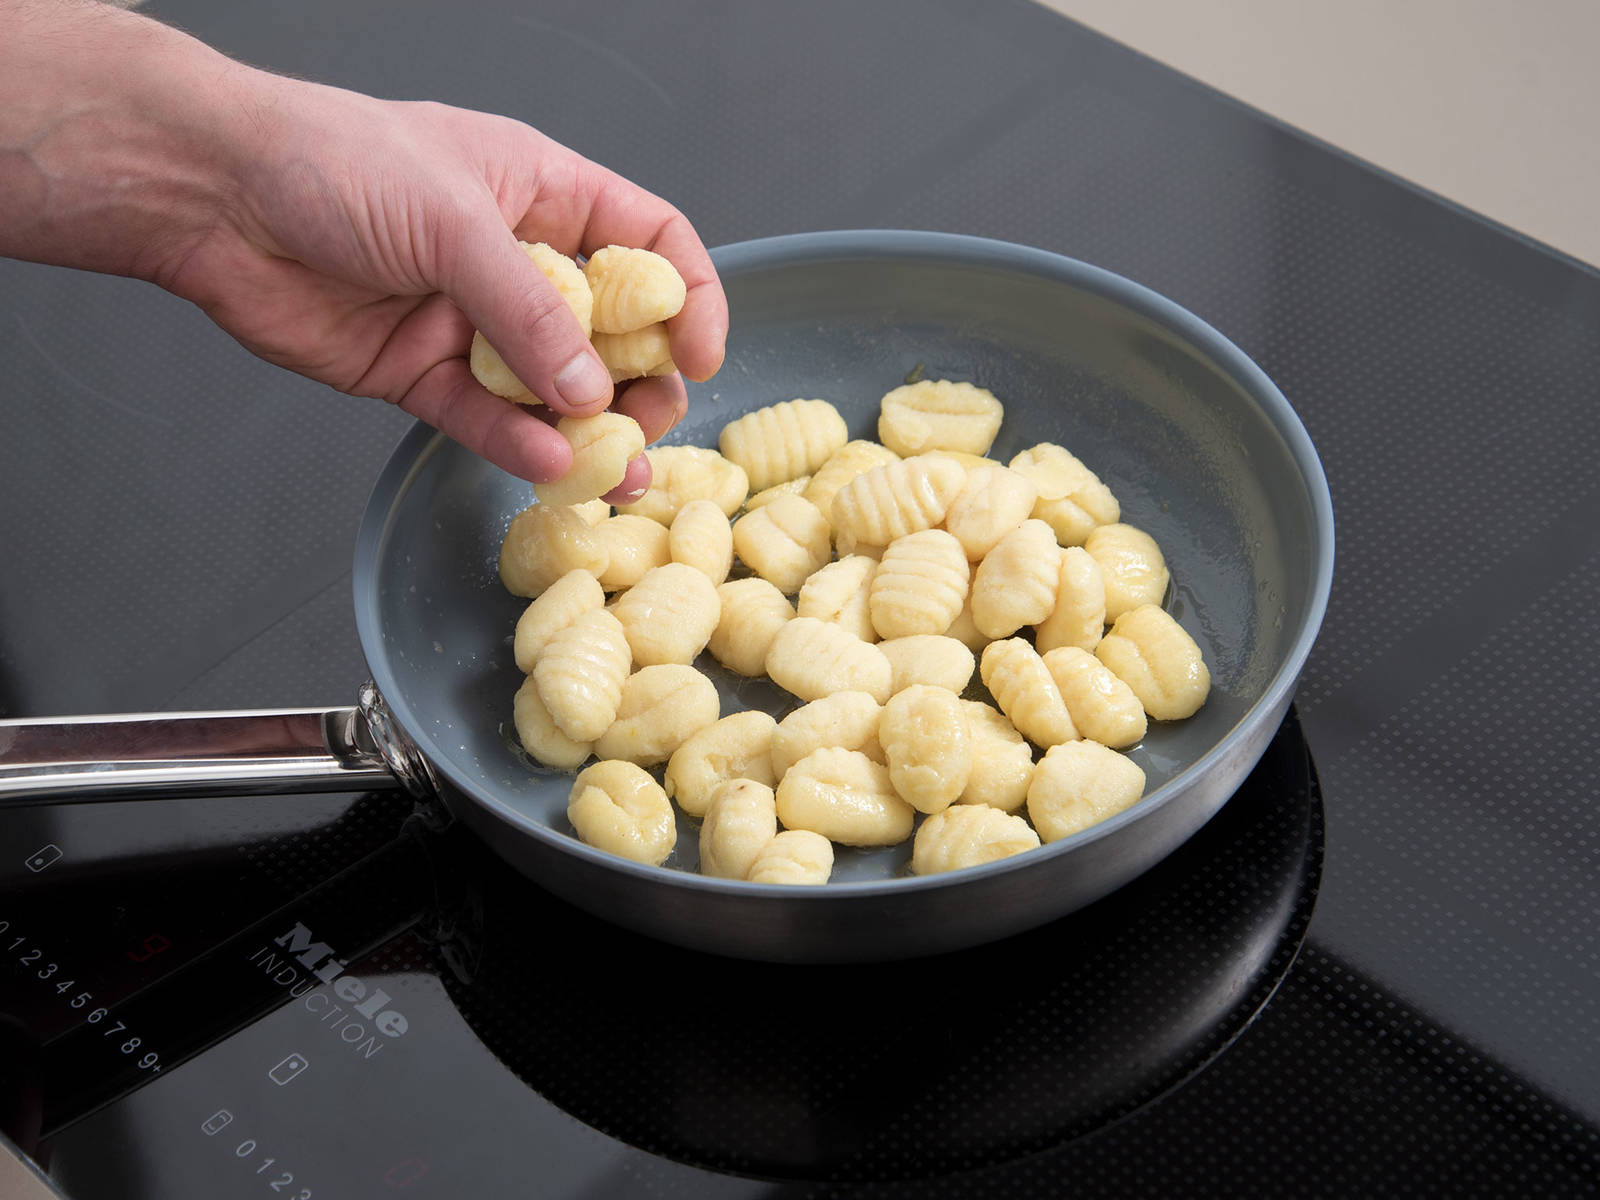 Meanwhile, melt butter in a frying pan. Fry gnocchi until lightly golden.